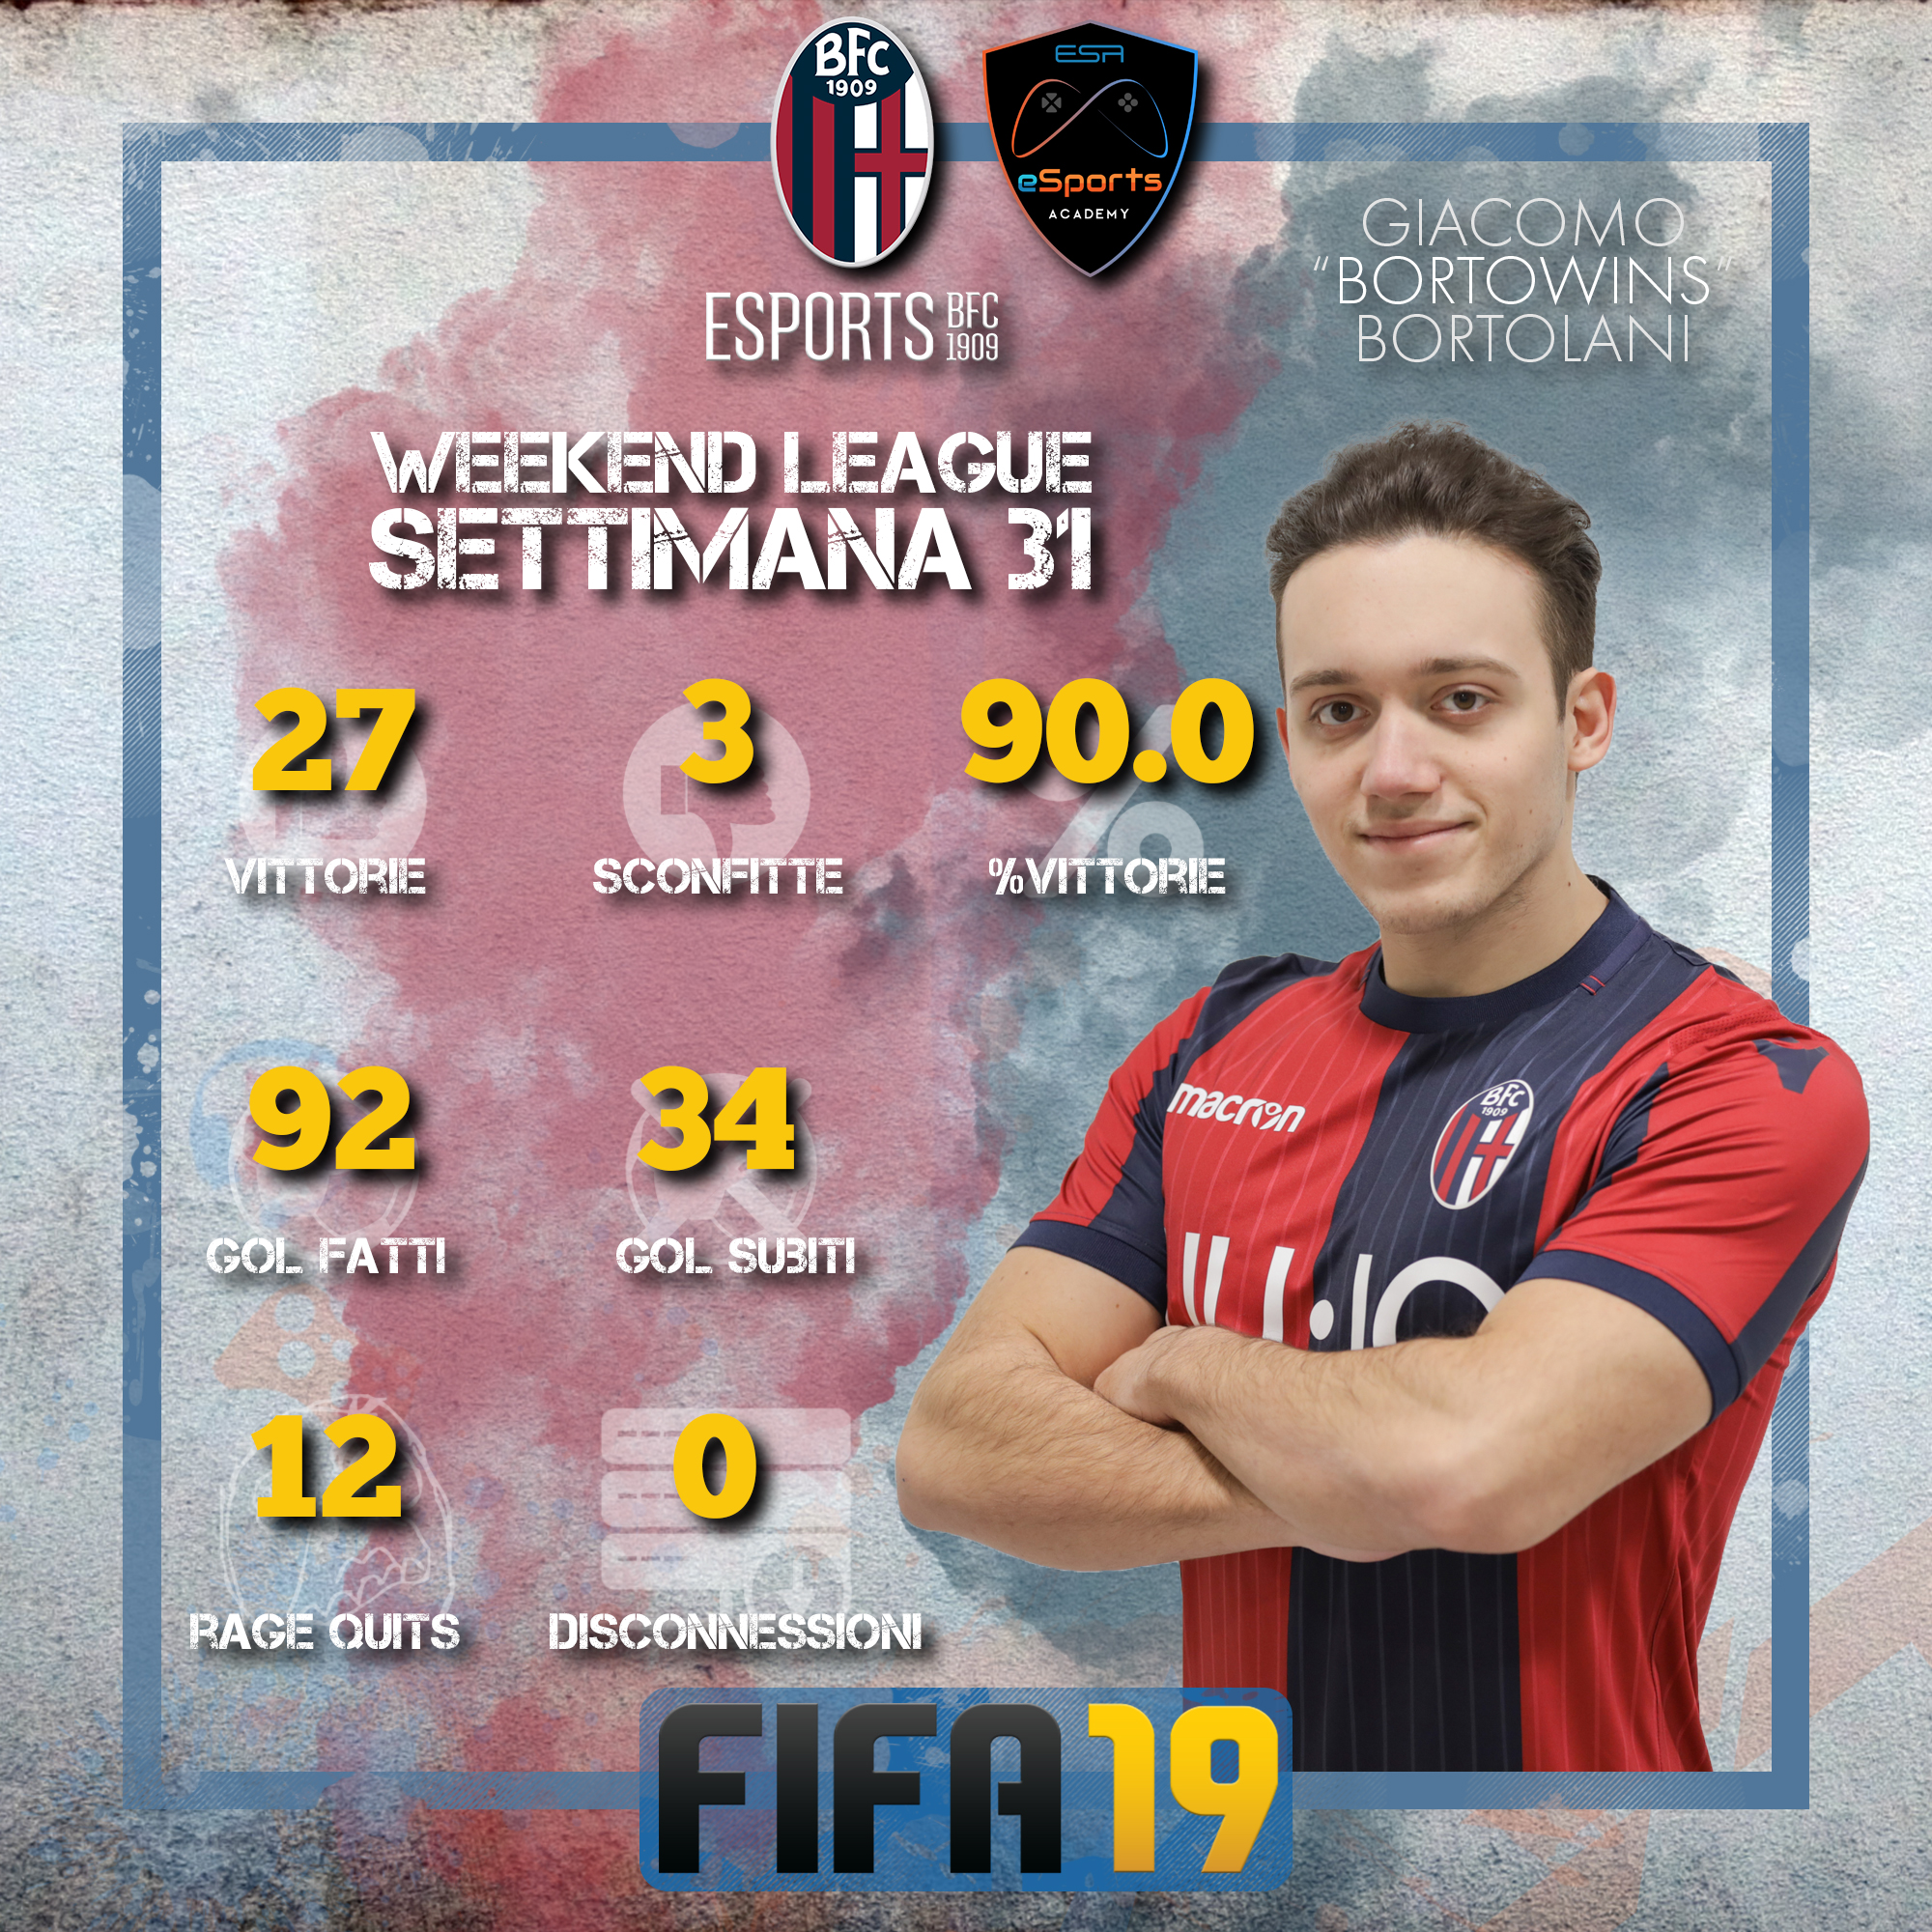 Fifa19_Weekend League_Week31_Bortowins.jpg